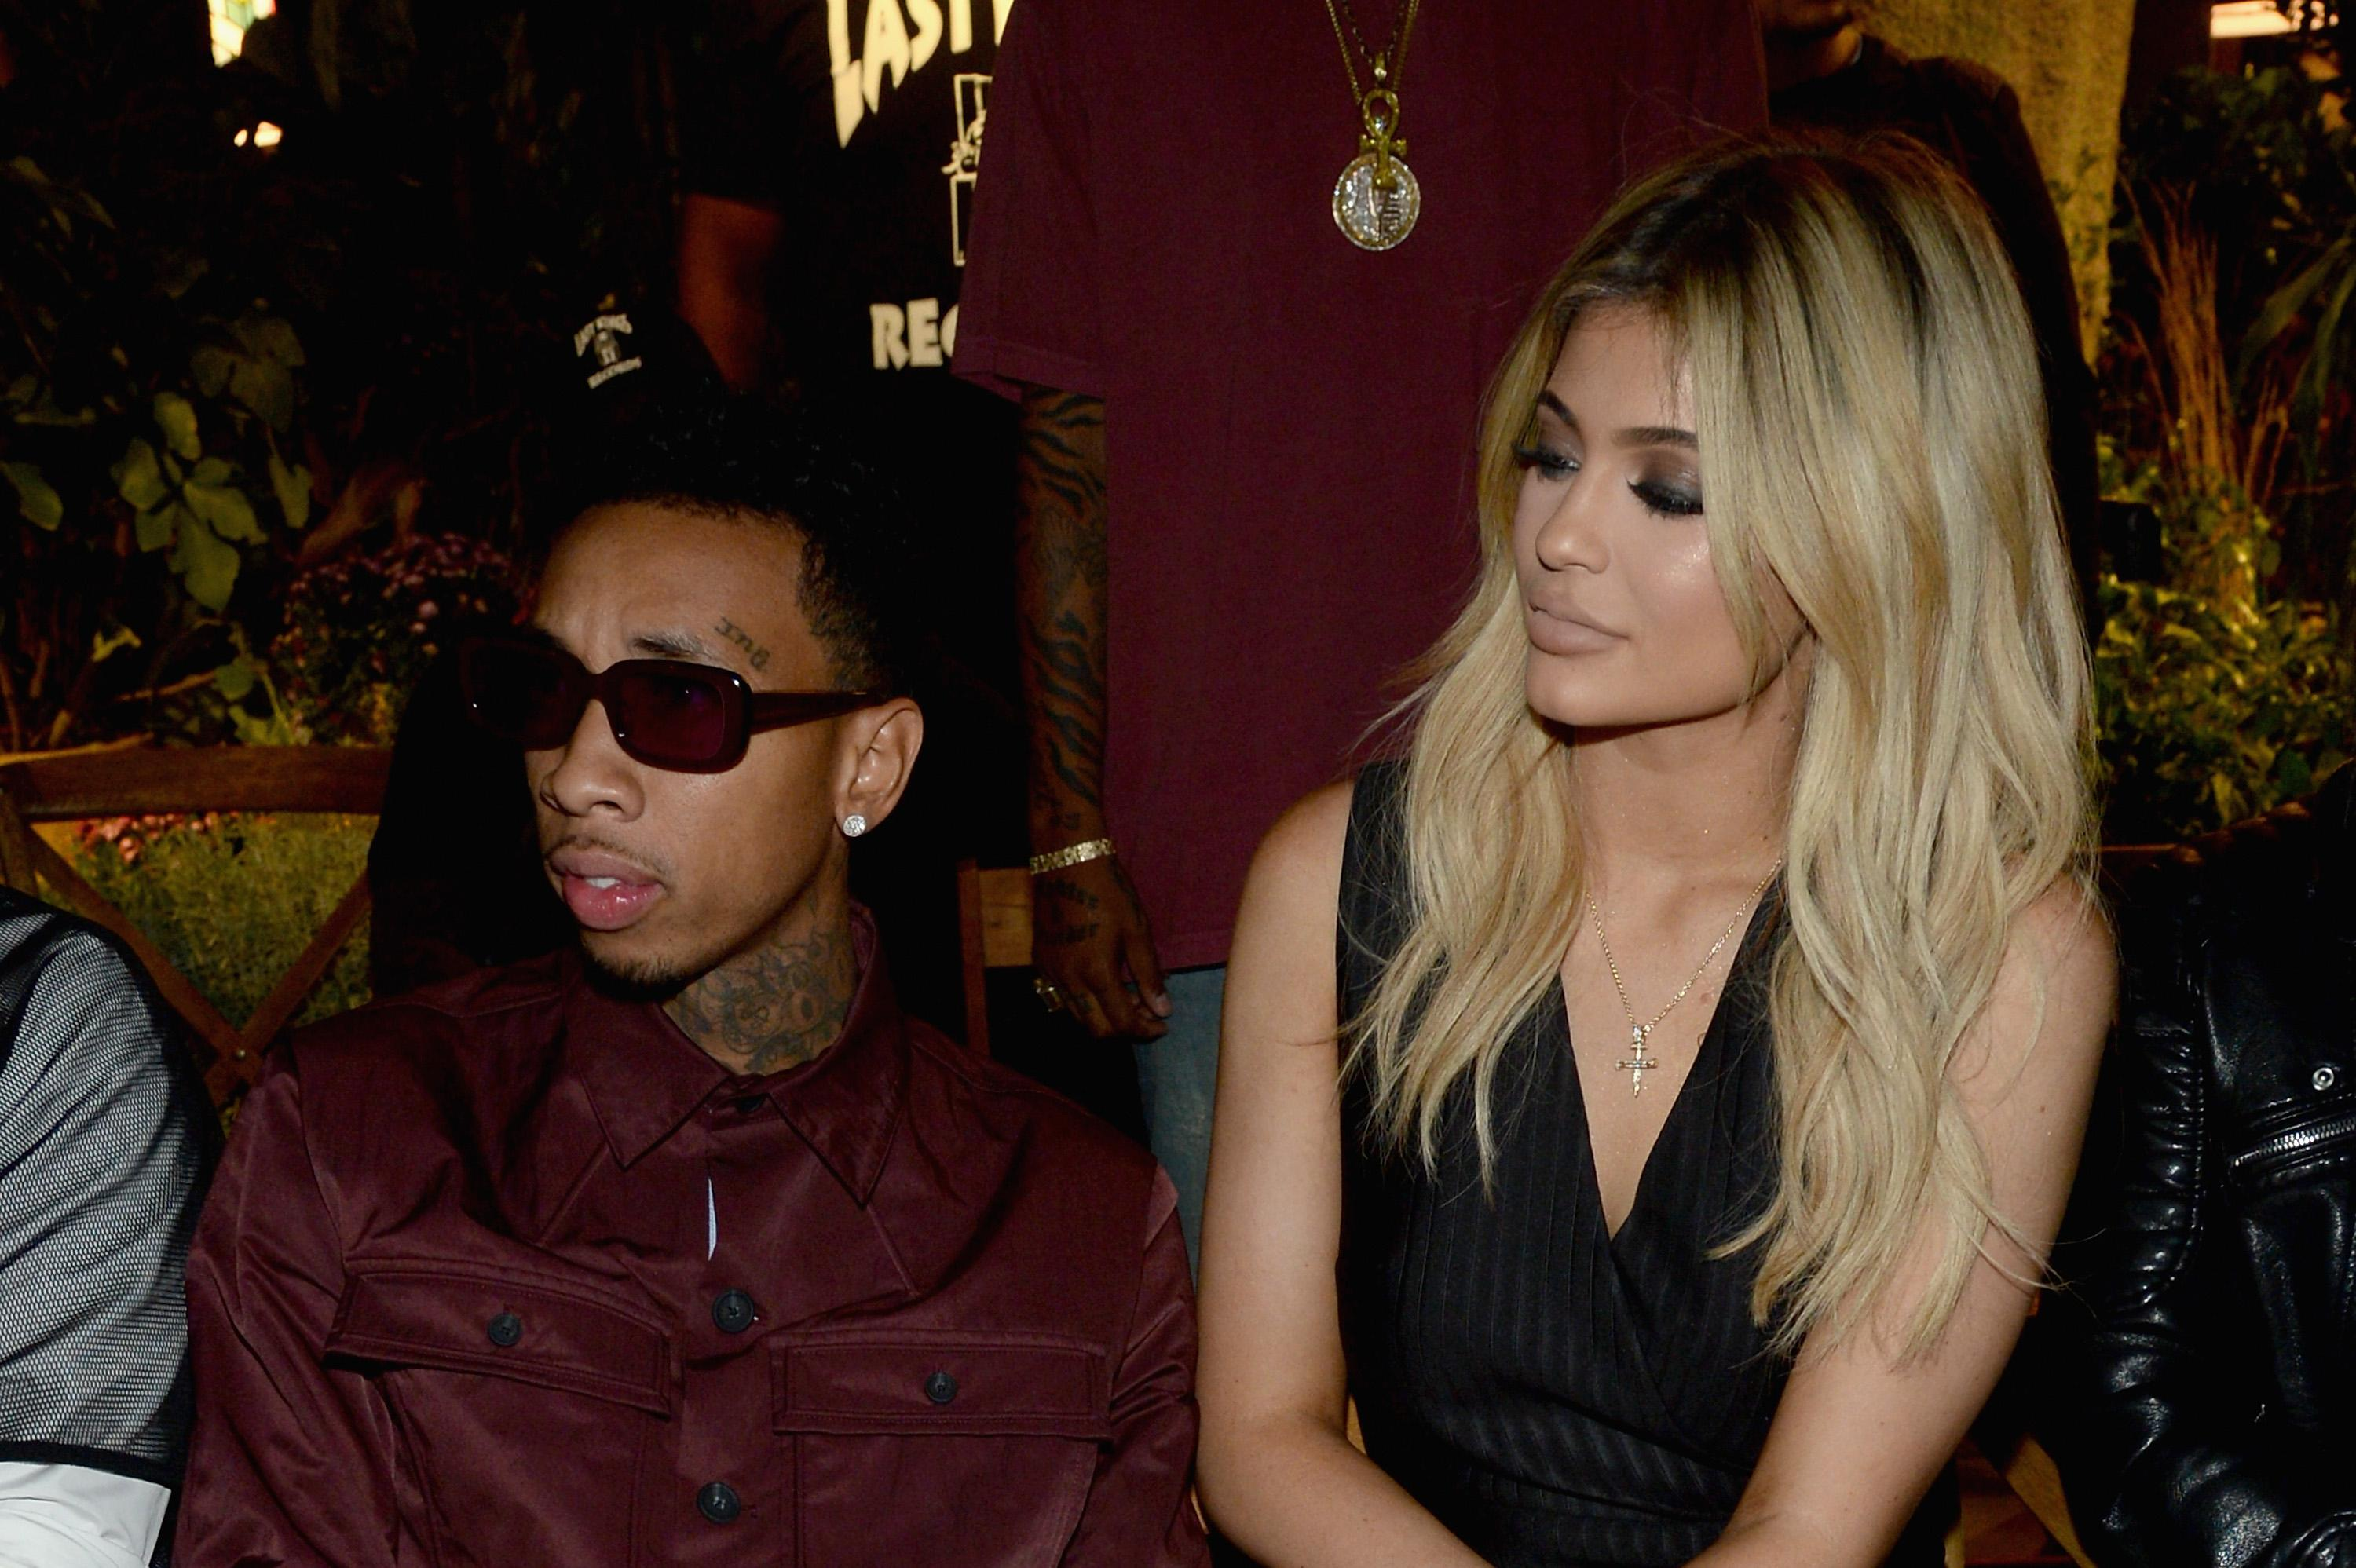 Tyga Kylie Jenner break busy work